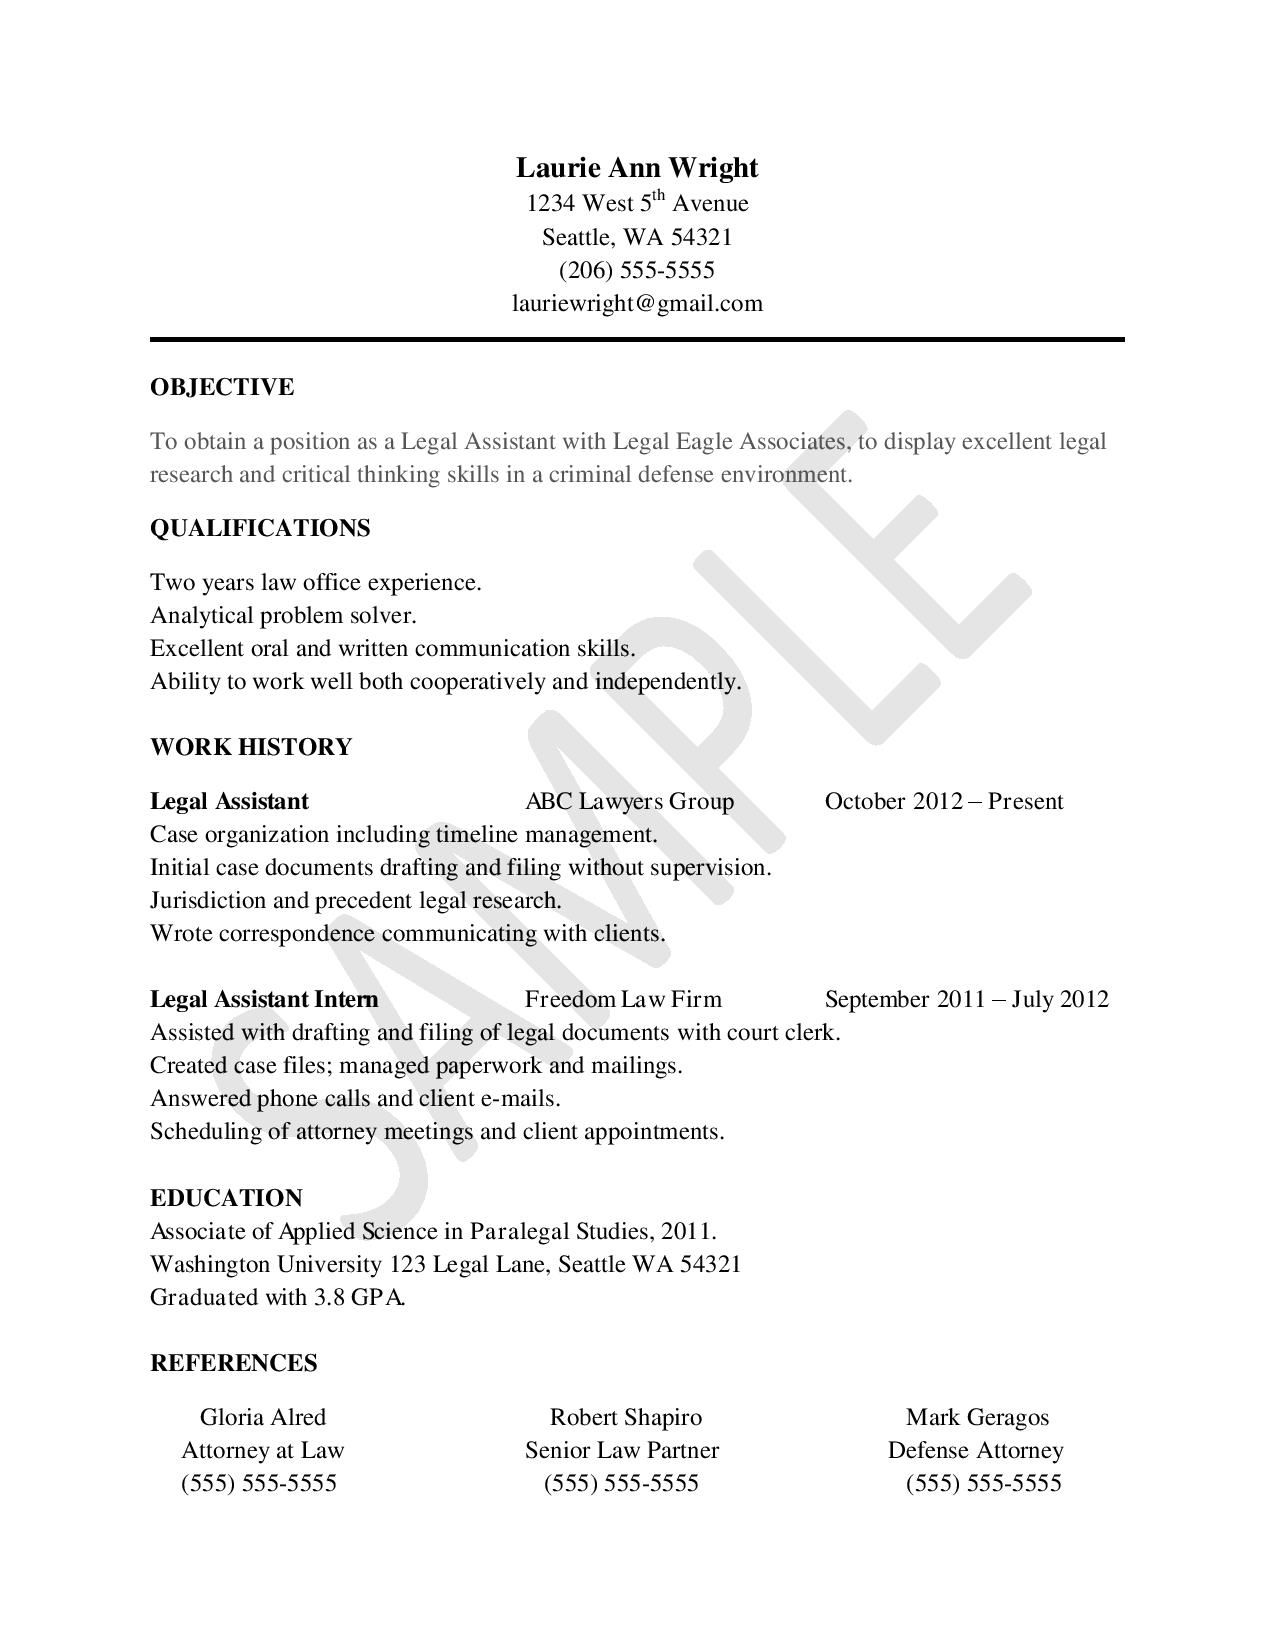 Awesome Sample Resume For Legal Assistants  A Resume Sample